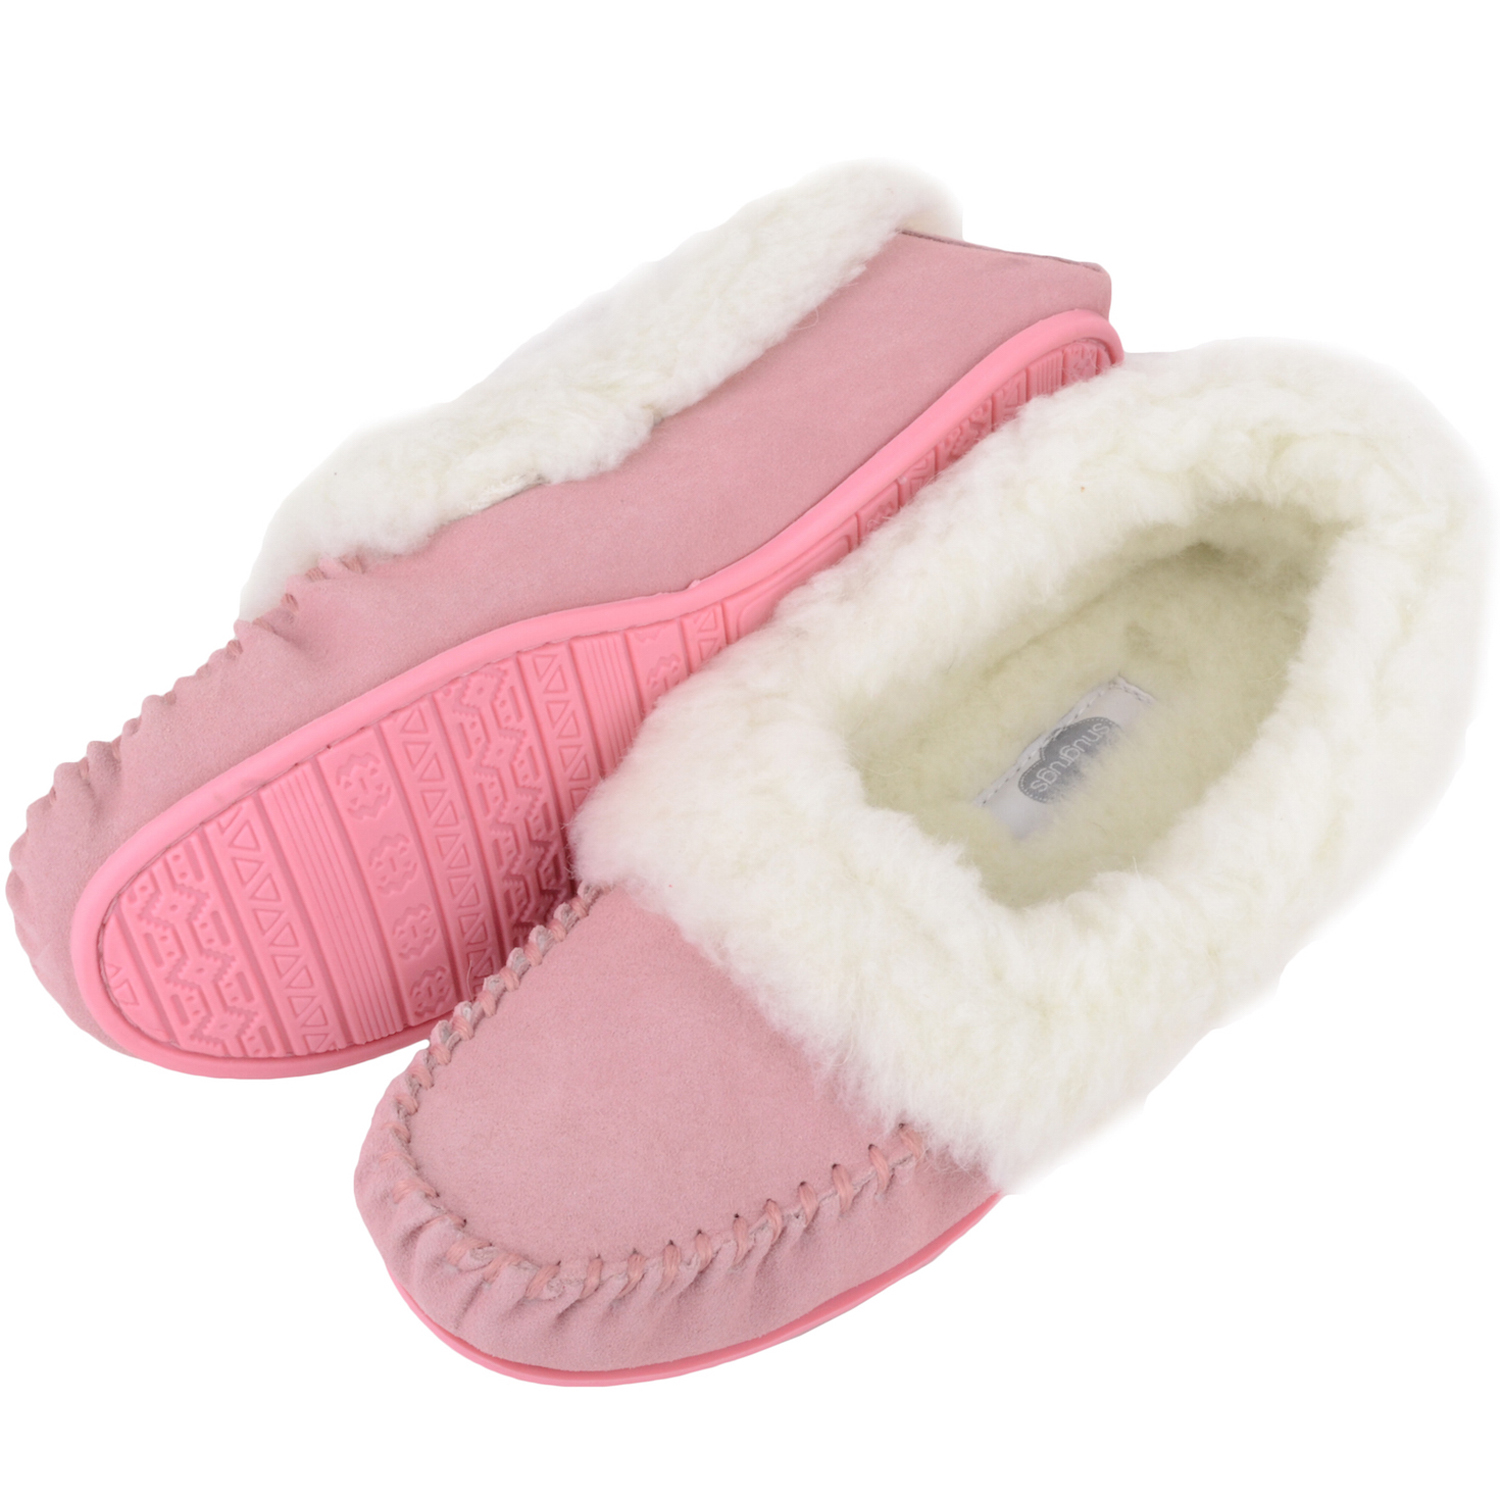 Snugrugs Layla - Luxury Wool Lined Slipper - Pink